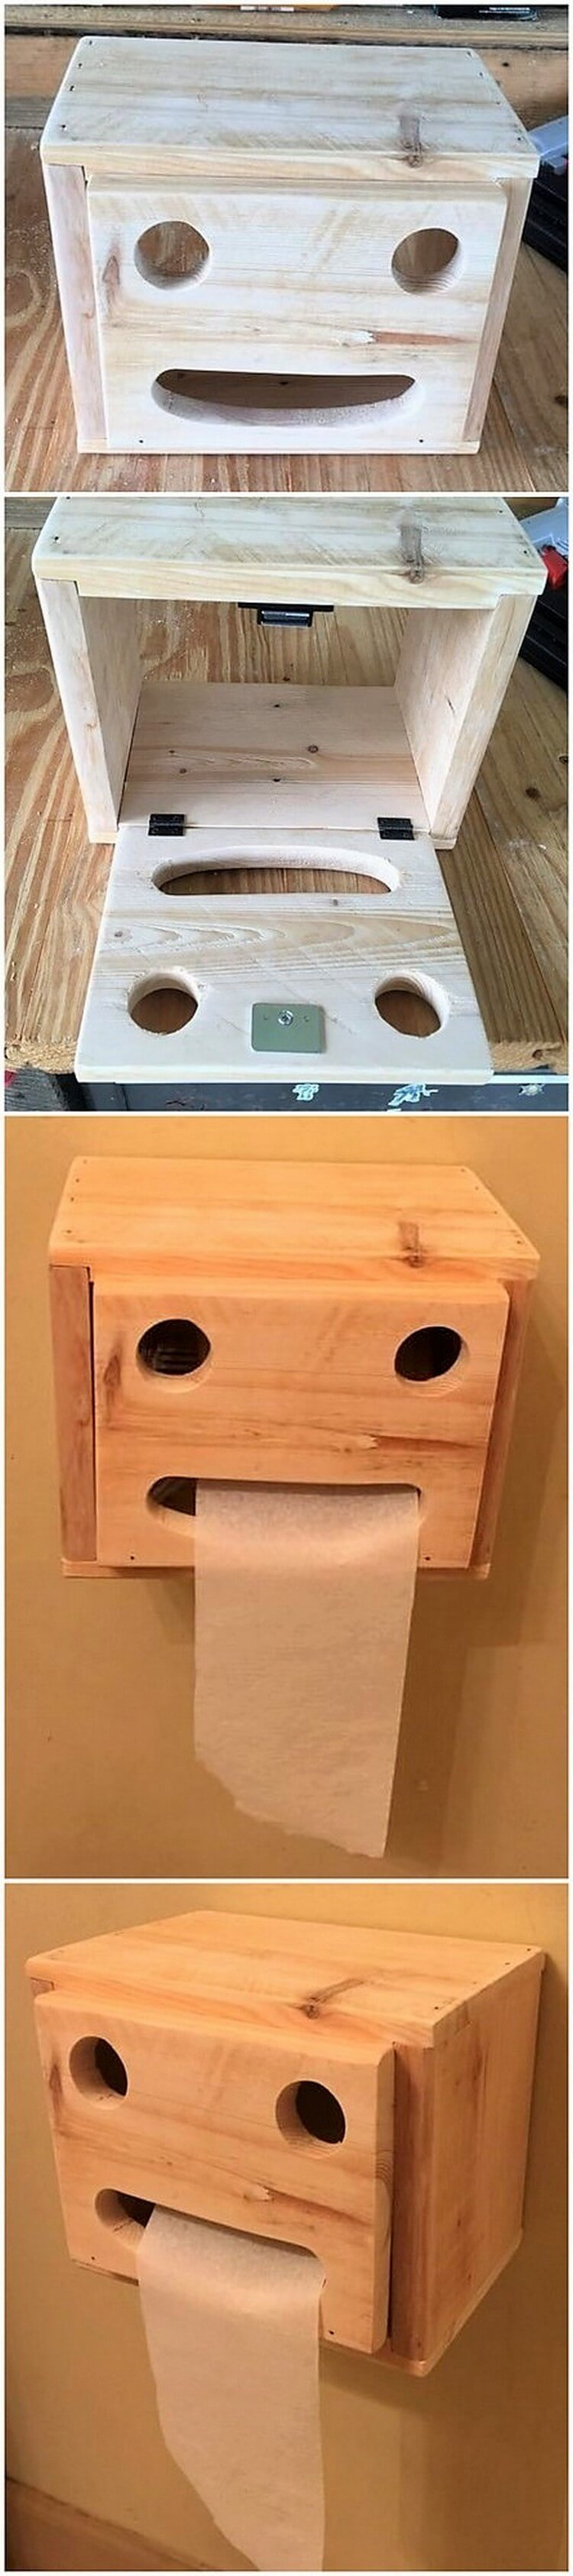 Pallet Toilet Paper Roll Holder